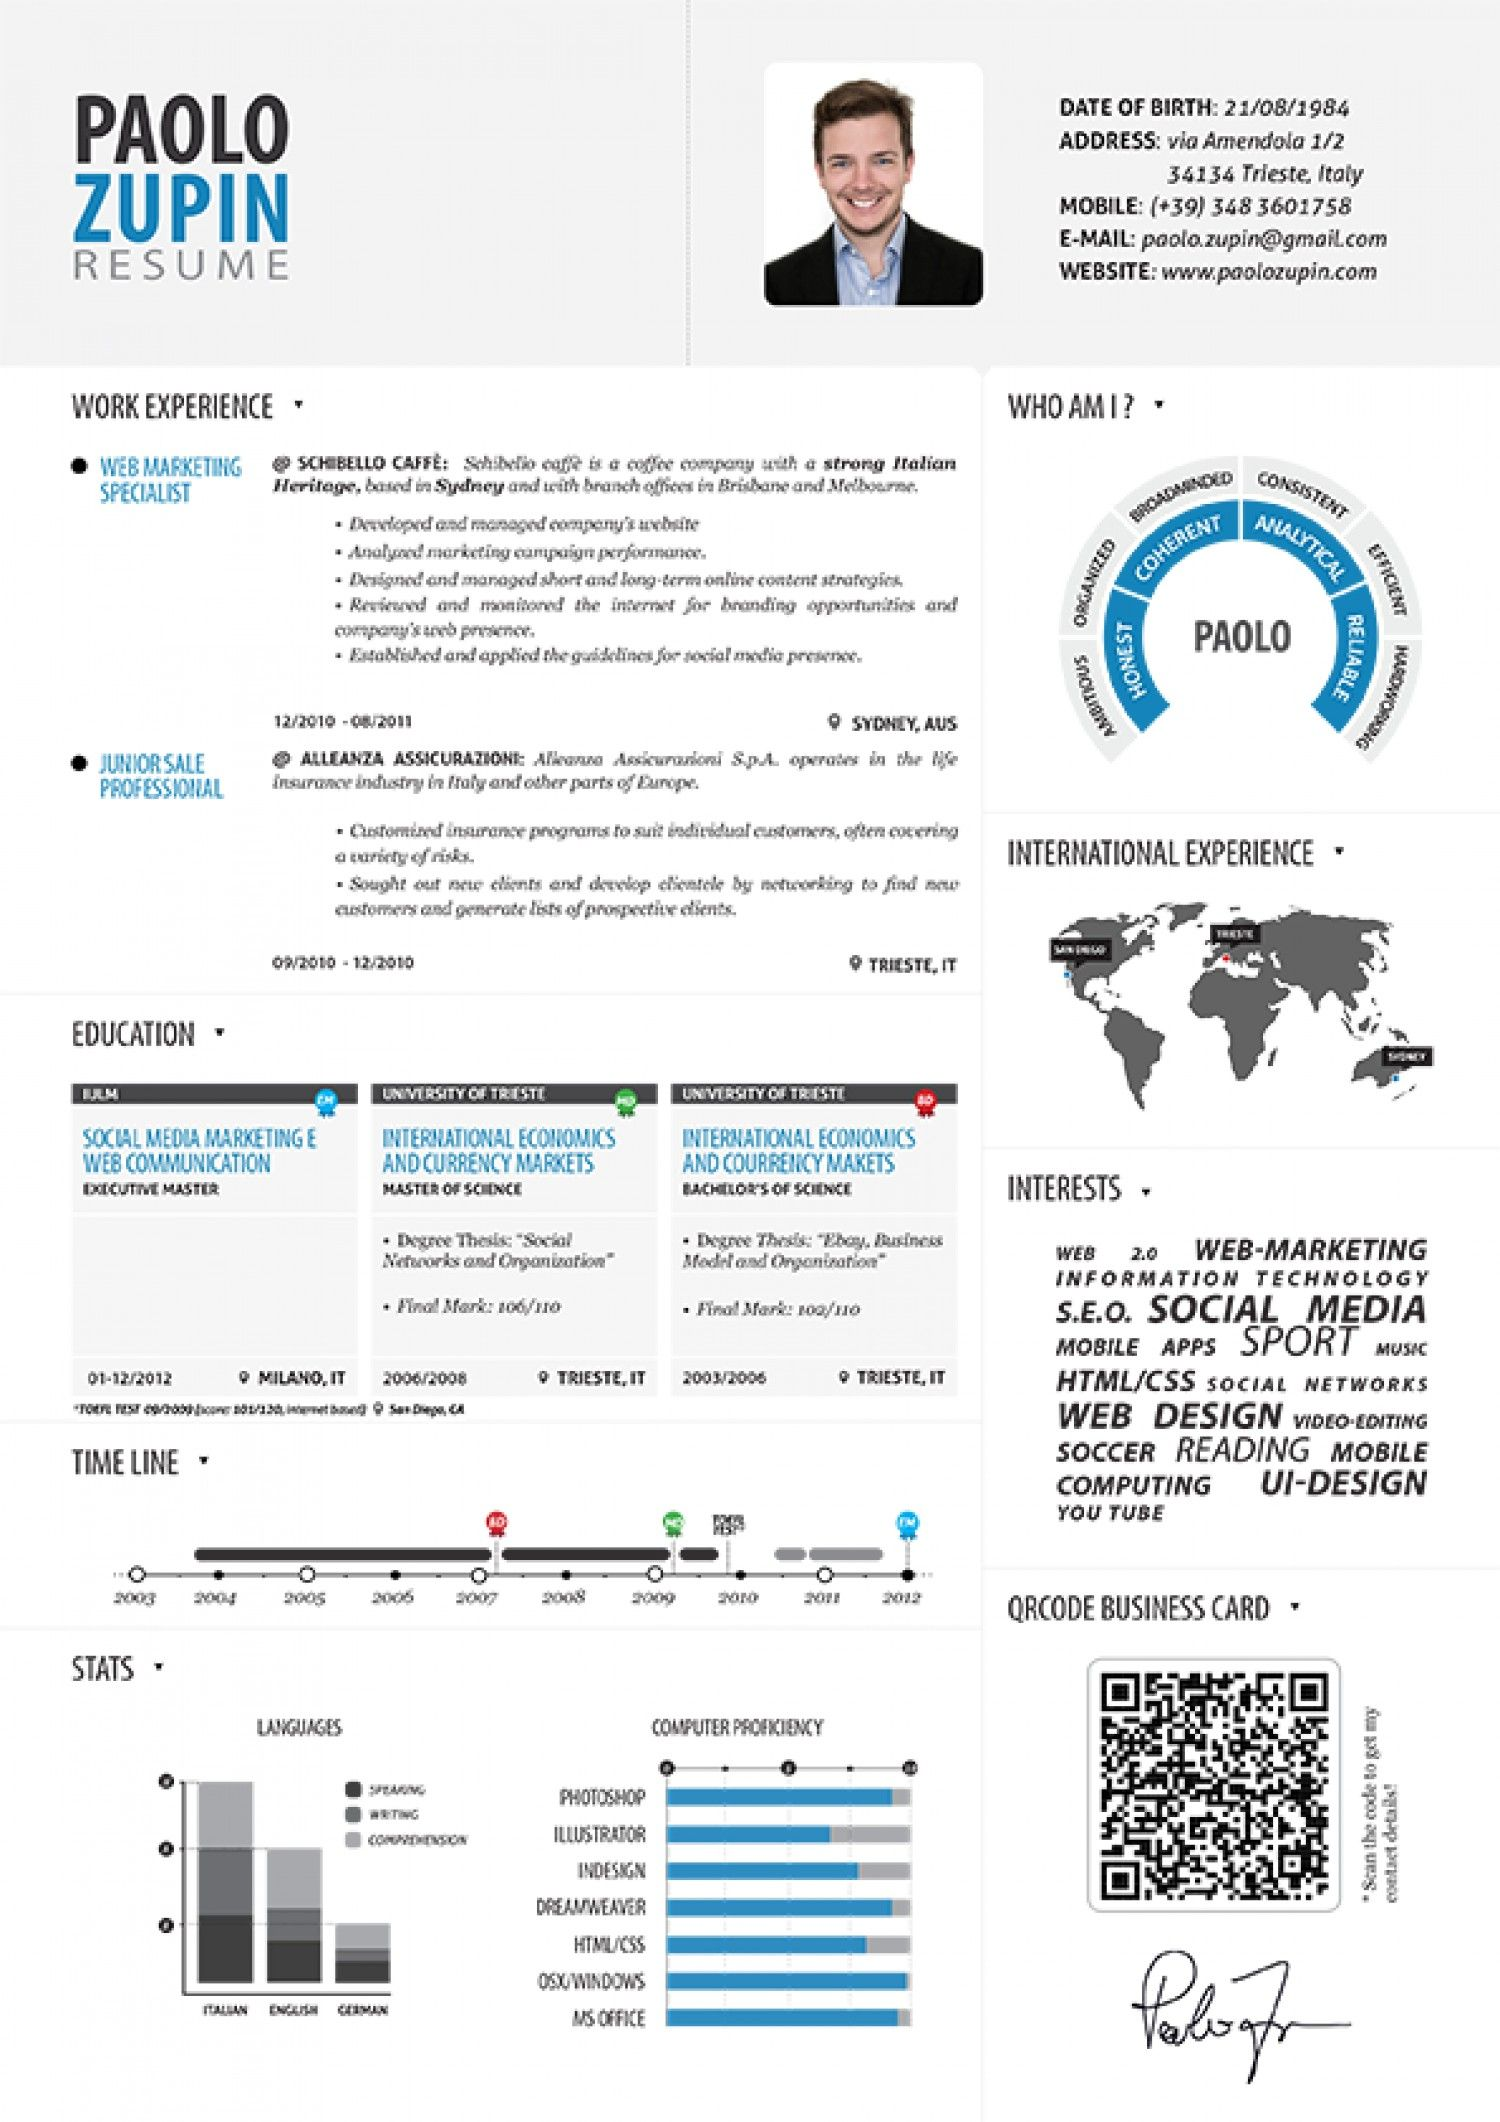 Opposenewapstandardsus  Marvellous  Images About Resume  Cv Design On Pinterest  Infographic  With Fetching  Images About Resume  Cv Design On Pinterest  Infographic Resume Resume And Resume Design With Attractive Resume For Customer Service Rep Also How To End A Resume In Addition Optimal Resume Mdc And Rn Resume Samples As Well As Skills Based Resume Example Additionally Infographic Resume Builder From Pinterestcom With Opposenewapstandardsus  Fetching  Images About Resume  Cv Design On Pinterest  Infographic  With Attractive  Images About Resume  Cv Design On Pinterest  Infographic Resume Resume And Resume Design And Marvellous Resume For Customer Service Rep Also How To End A Resume In Addition Optimal Resume Mdc From Pinterestcom